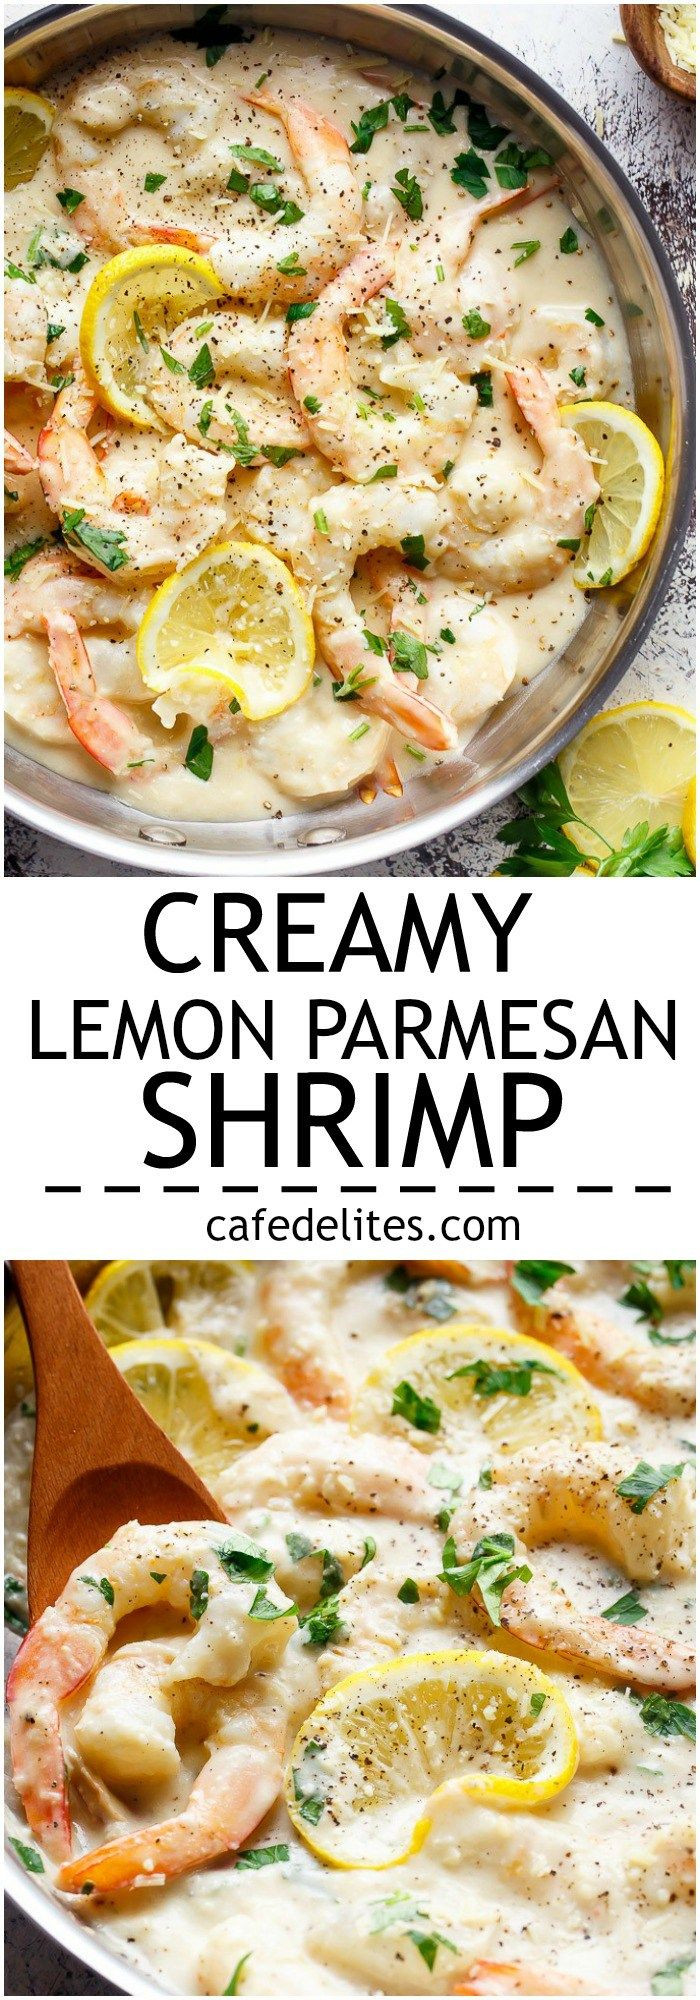 Gourmet Dinner Recipes  Creamy Lemon Parmesan Shrimp is a restaurant quality